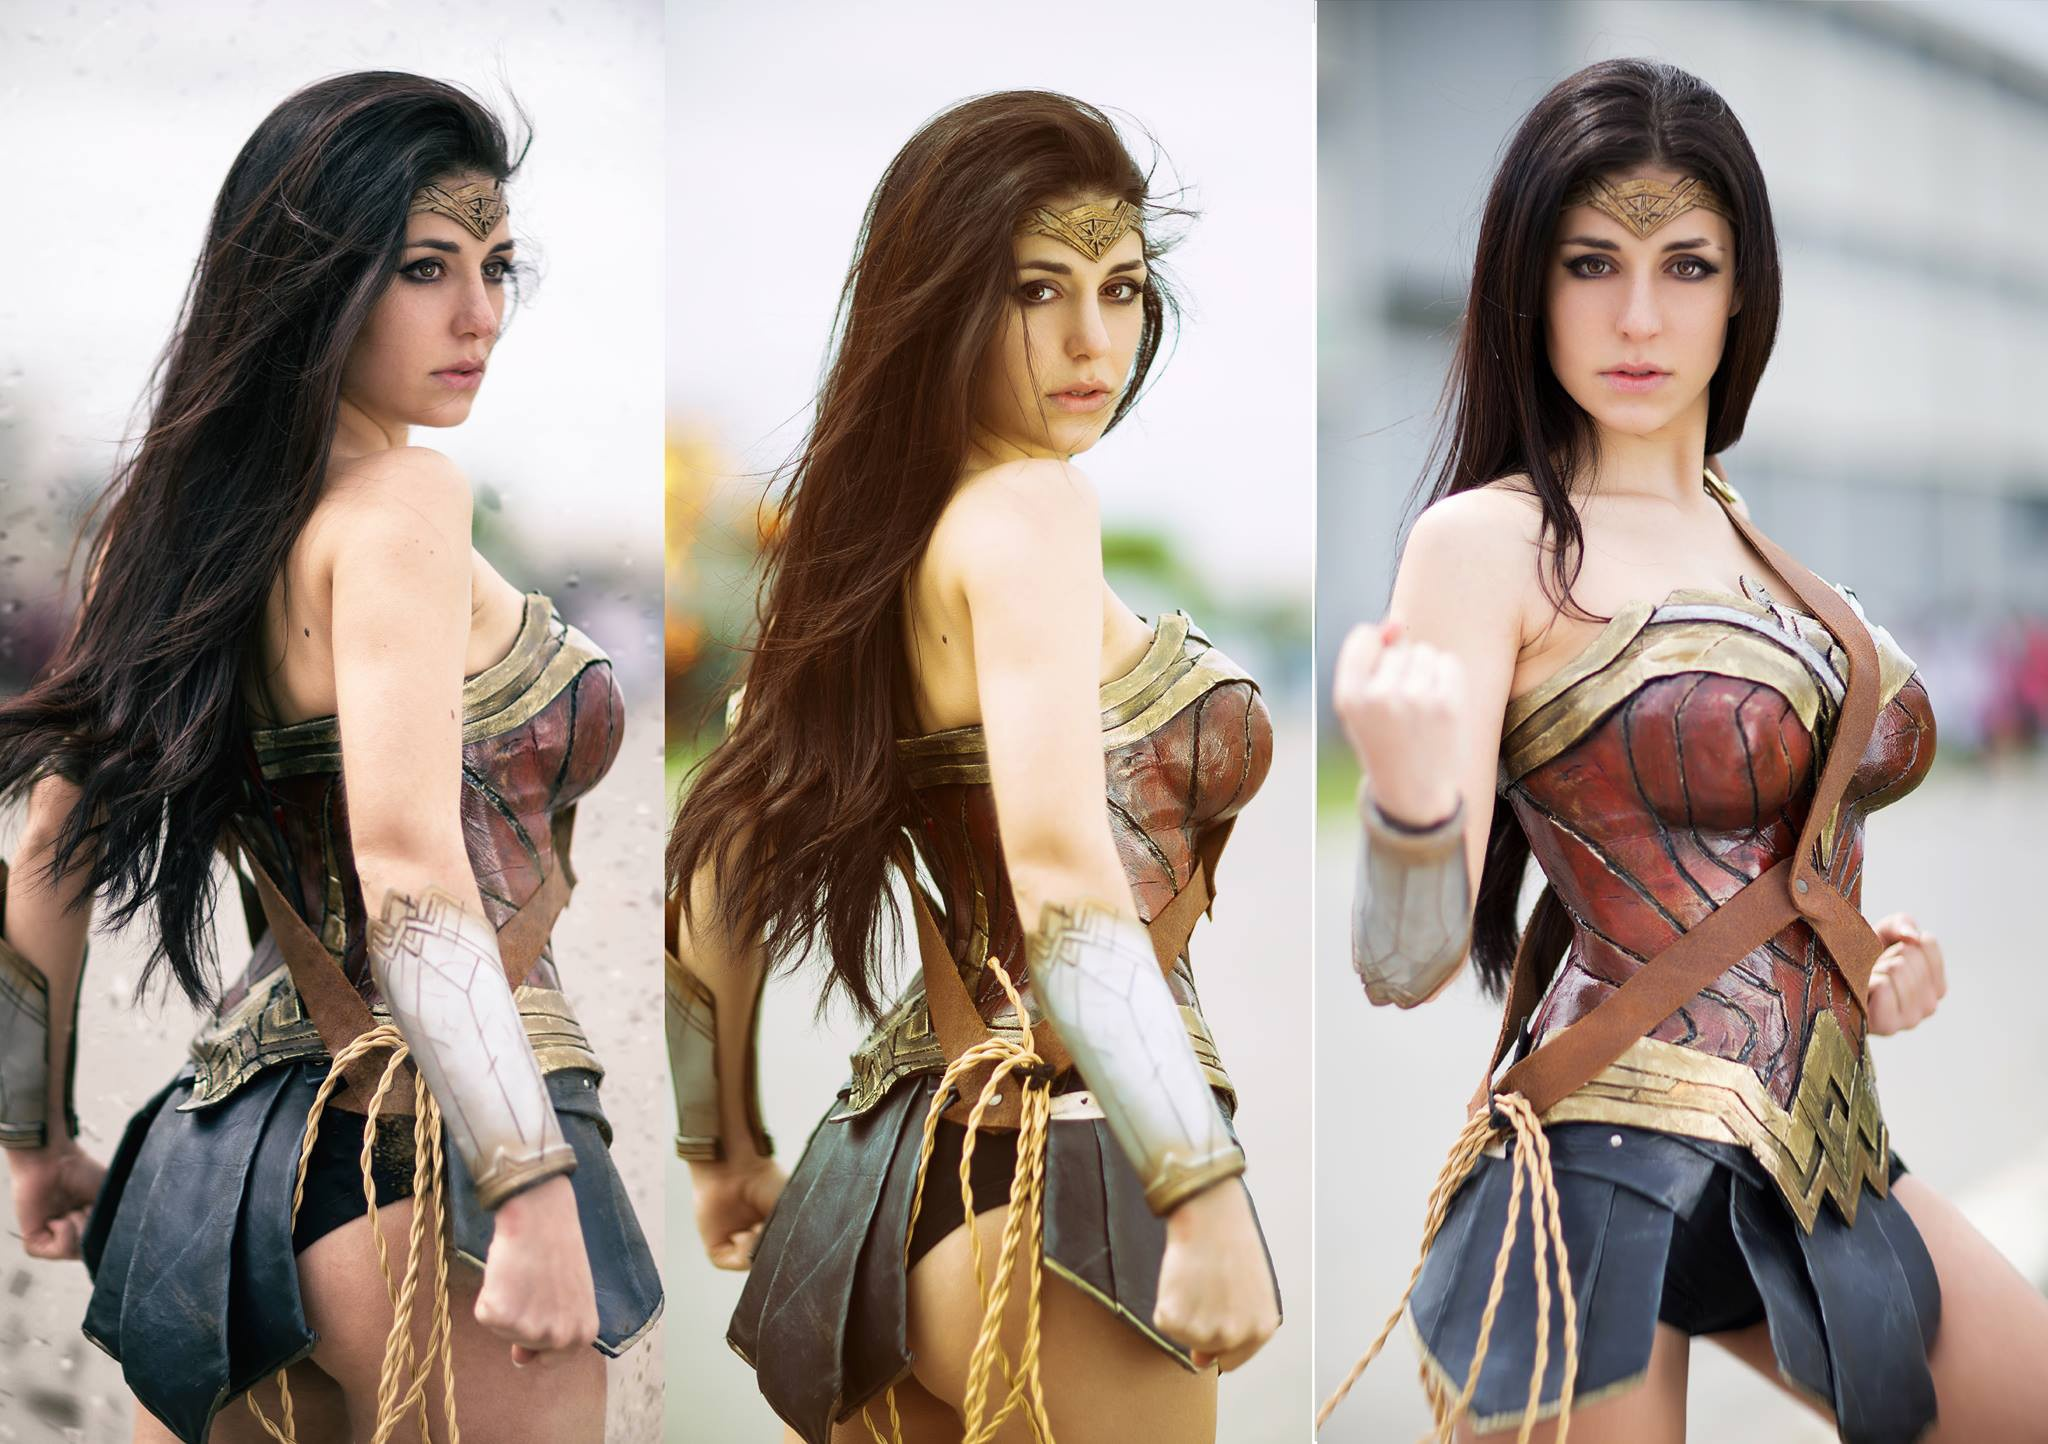 Ambra Pazzani Wonder Woman